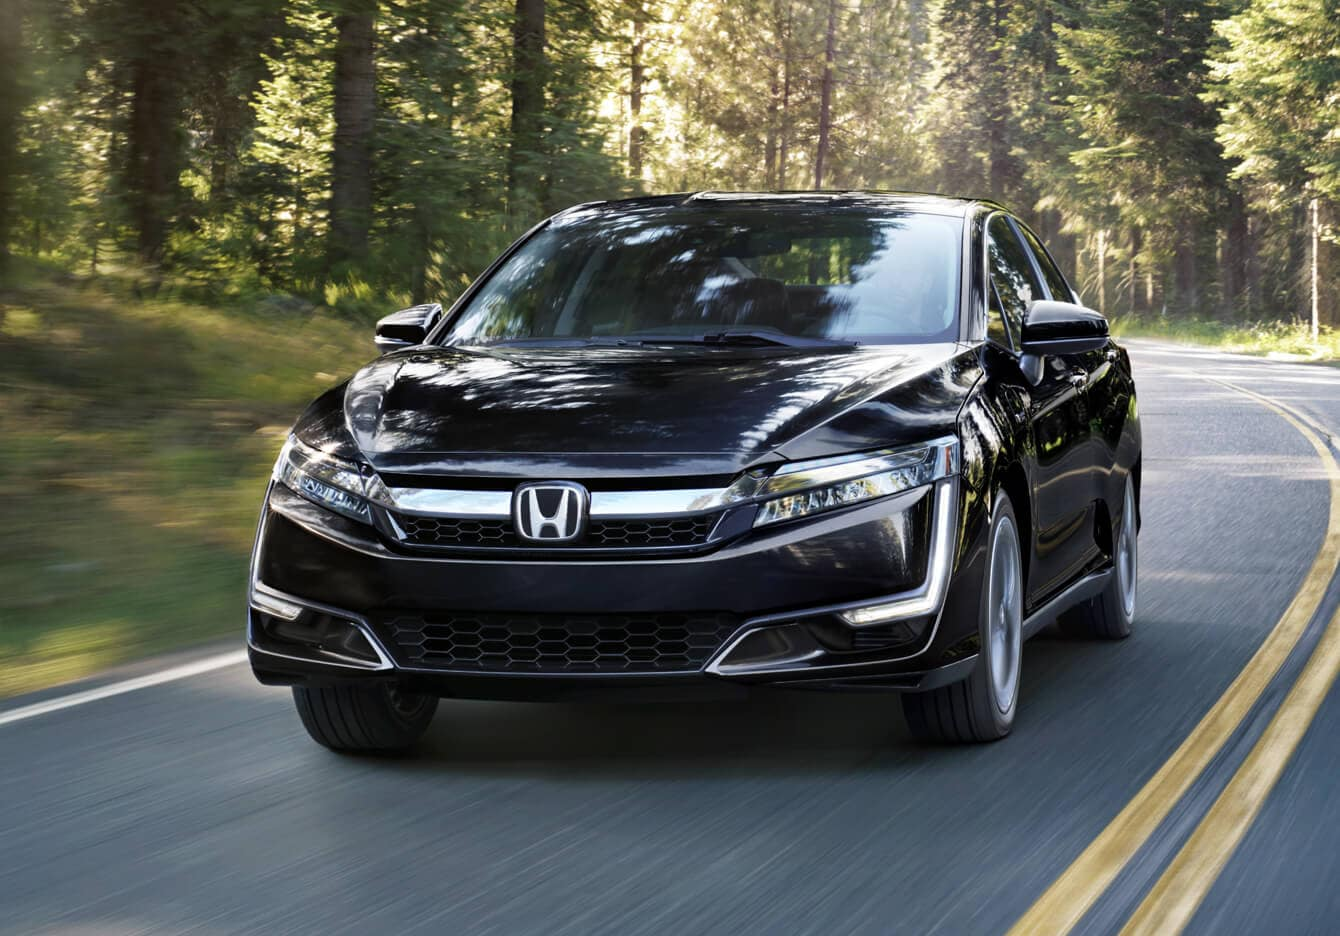 2018 Honda Clarity Plug-In Hybrid Exterior Front Angle Driver Side